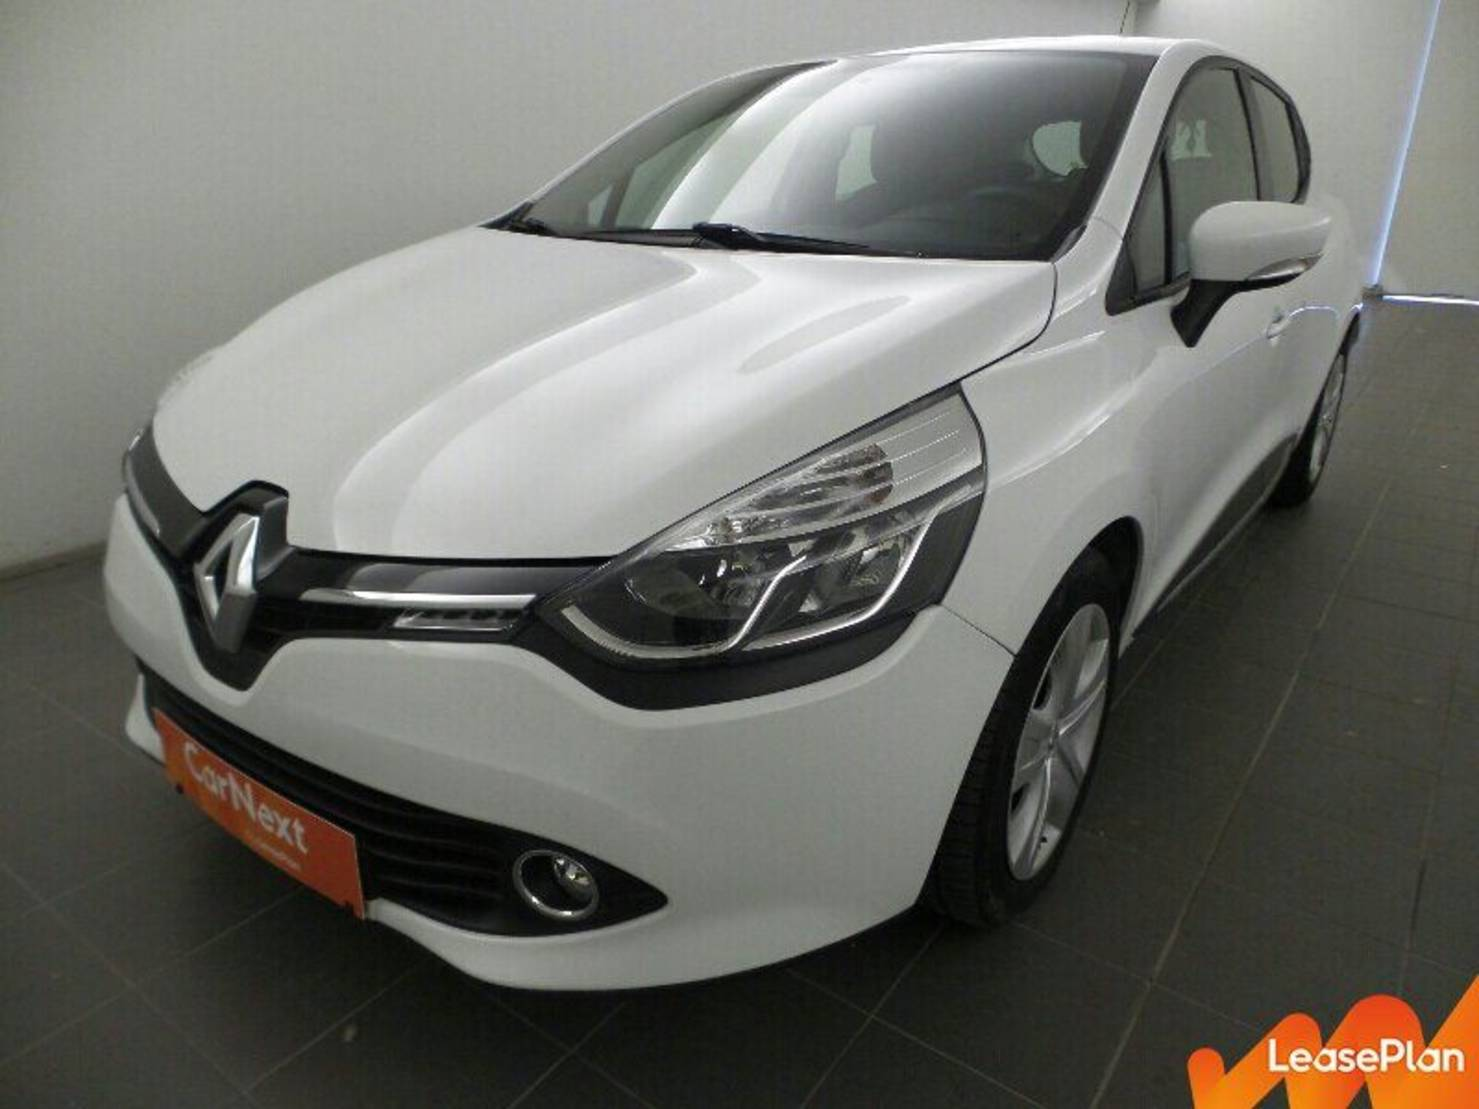 Renault Clio IV dCi 90 Energy eco2, Business 82g detail1